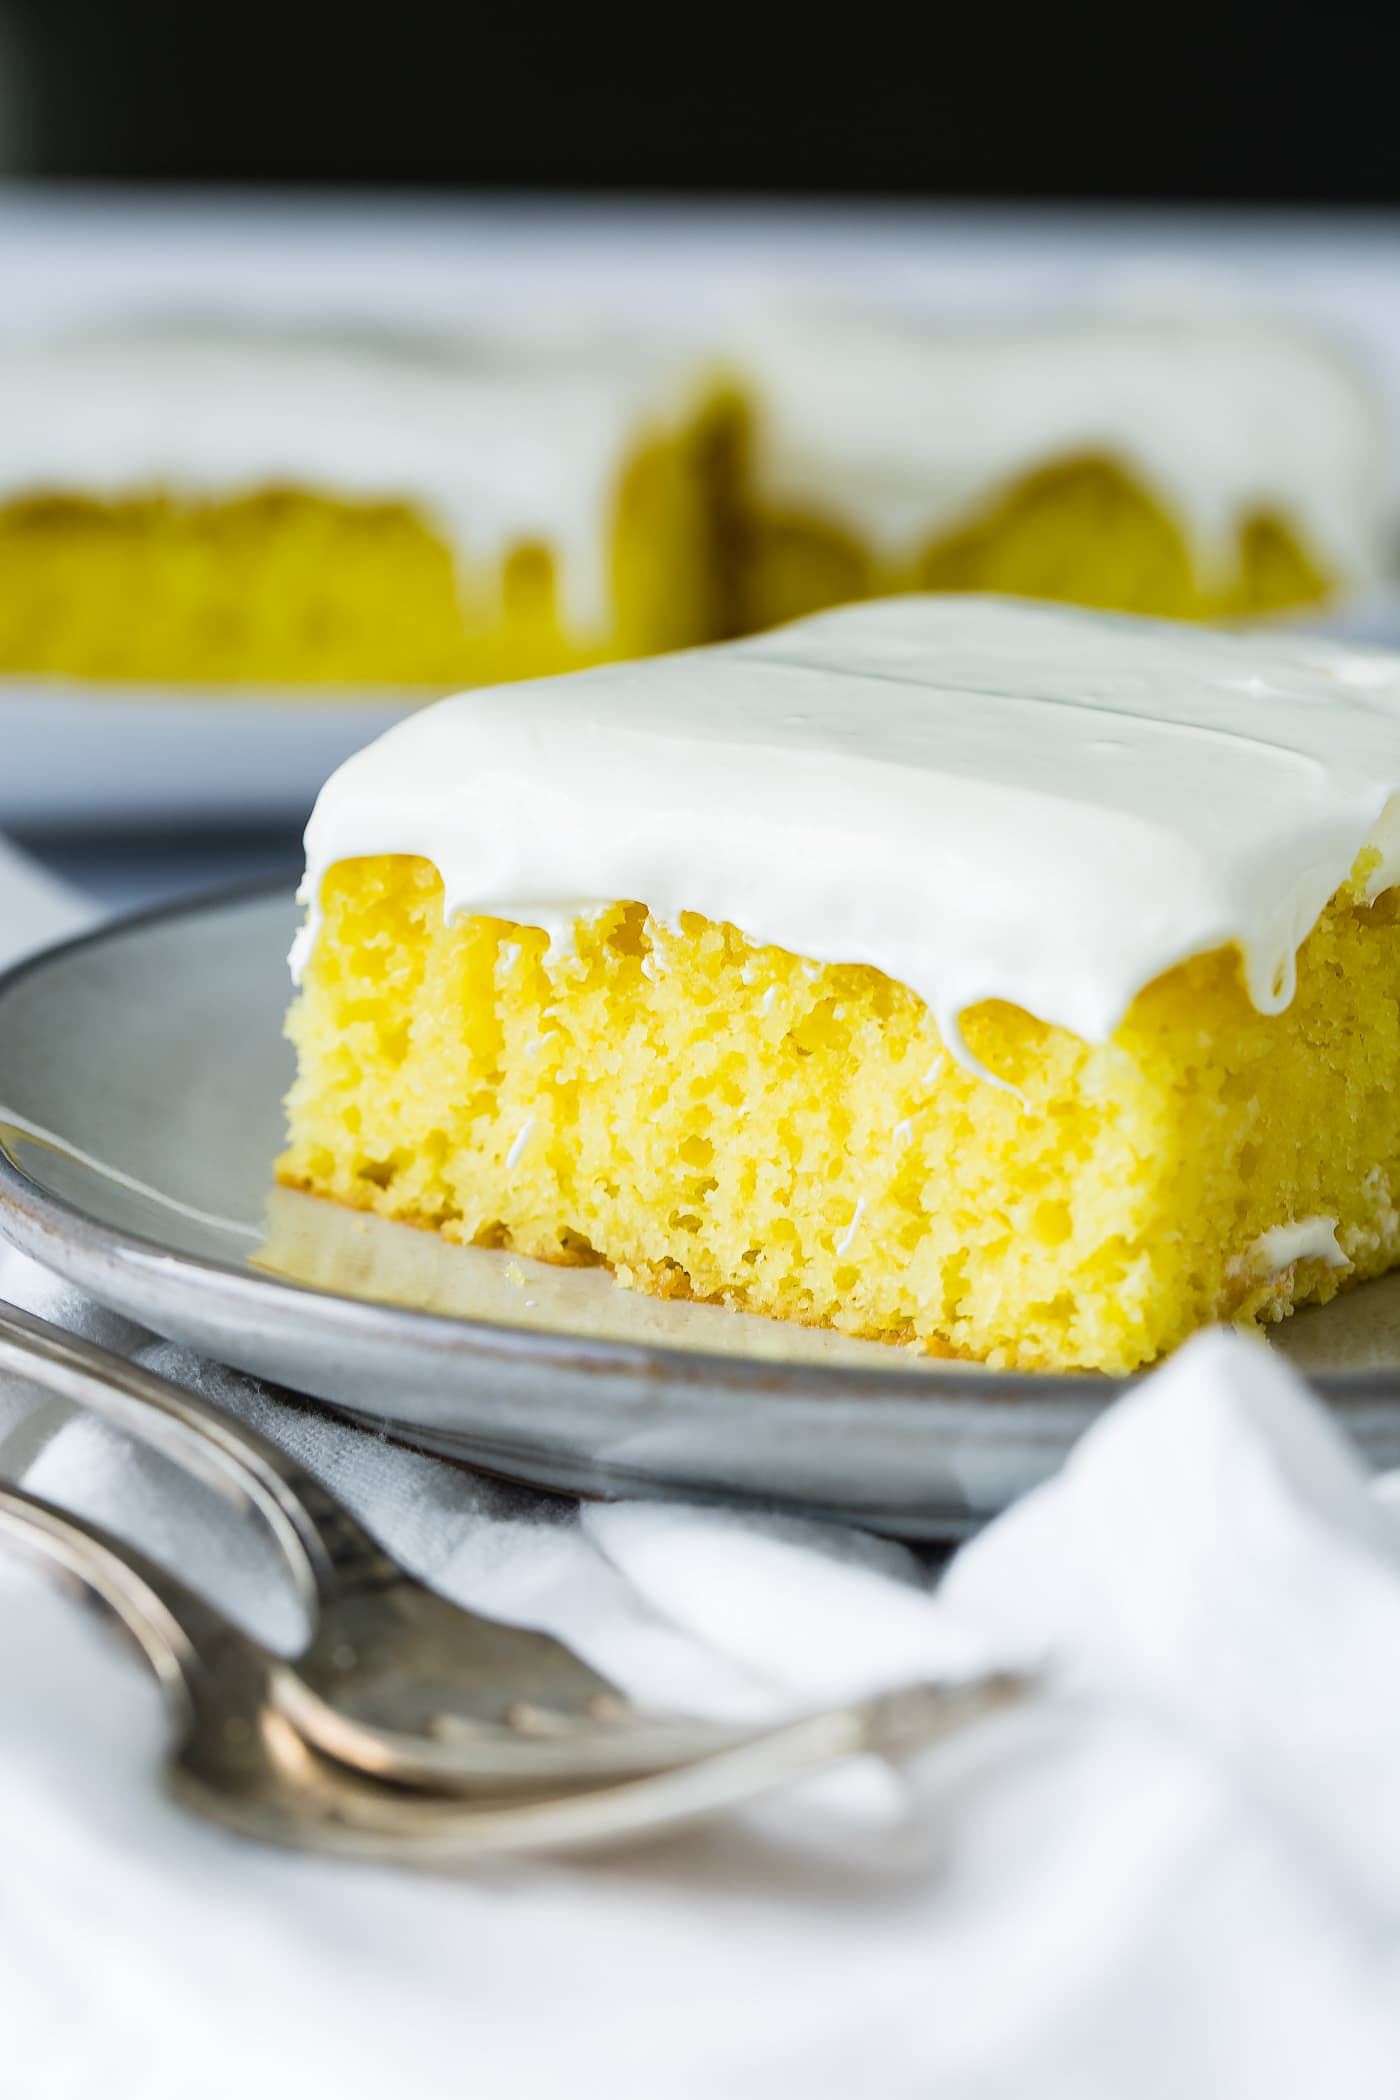 A slice of frosted lemon jello cake on a serving plate with a couple of slices on another plate in the background. There are two forks resting on a white linen napkin next to the plate of cake.